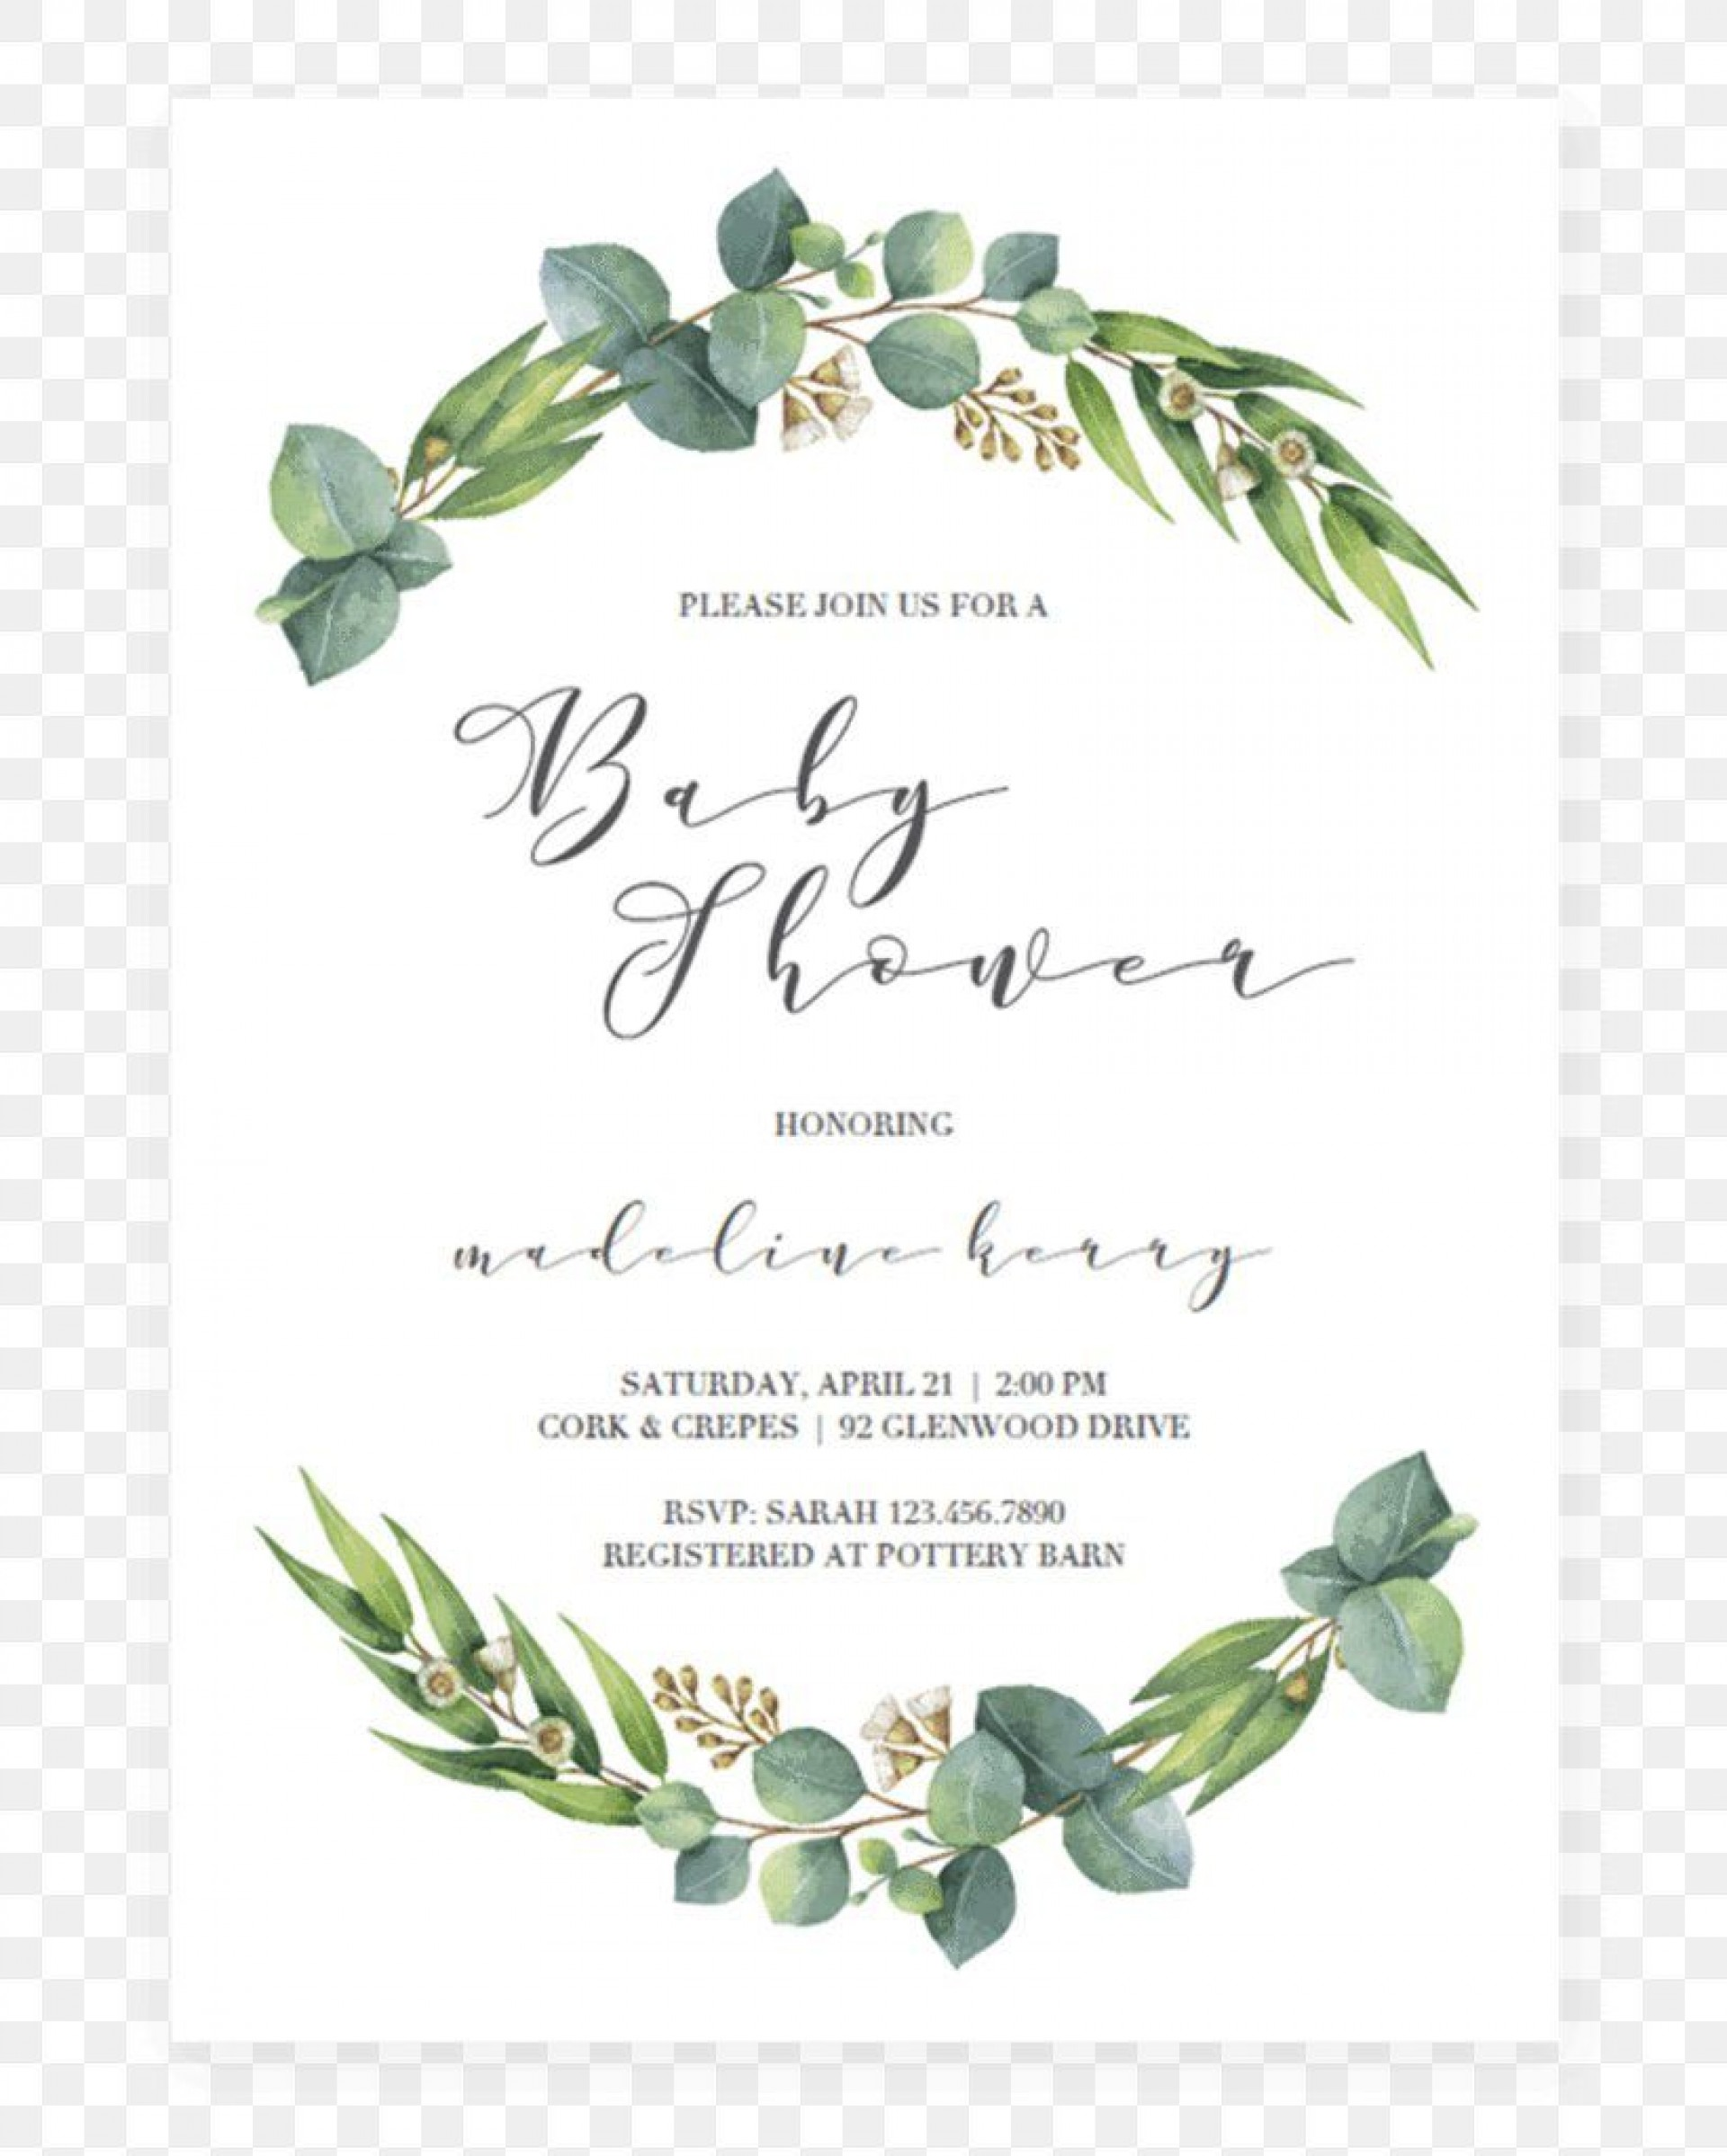 009 Impressive Free Download Wedding Invitation Template For Word Idea  Microsoft Indian1920